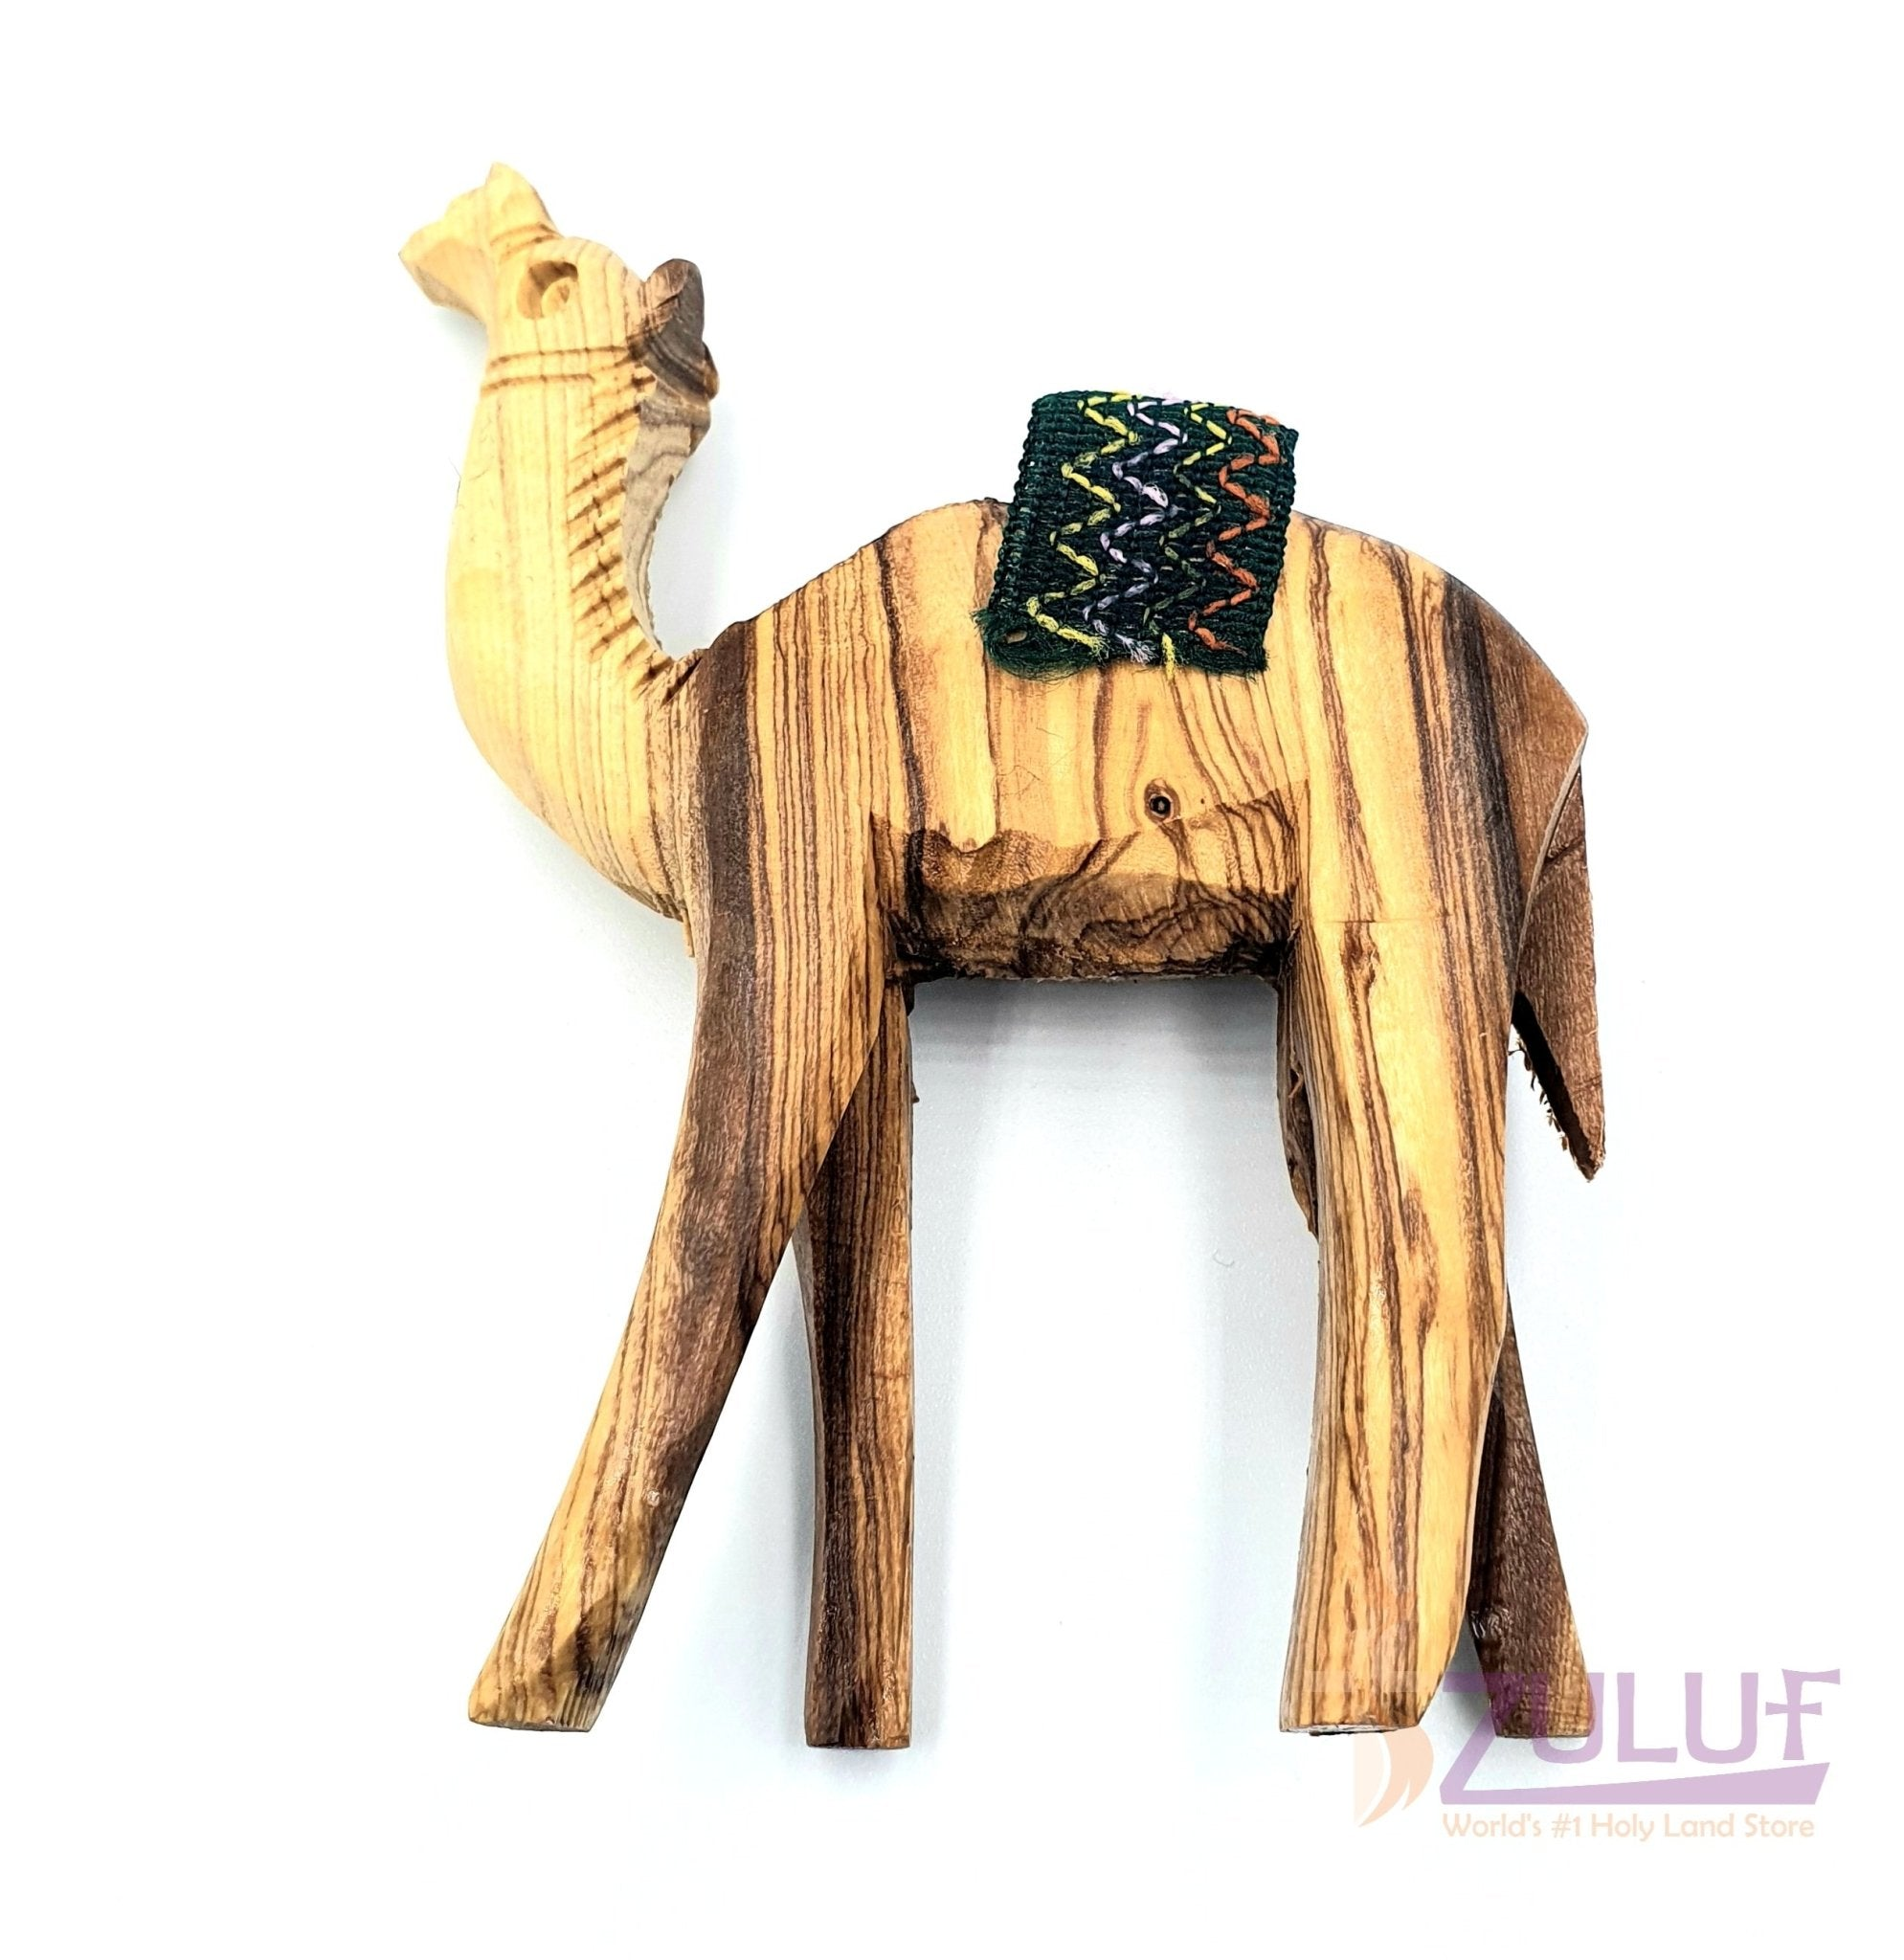 Christian Gift Olive Wood Meduim Camel Handicraft Red Saddle By ZULUF Factory, 11.5X9CM - ANI002 - Zuluf